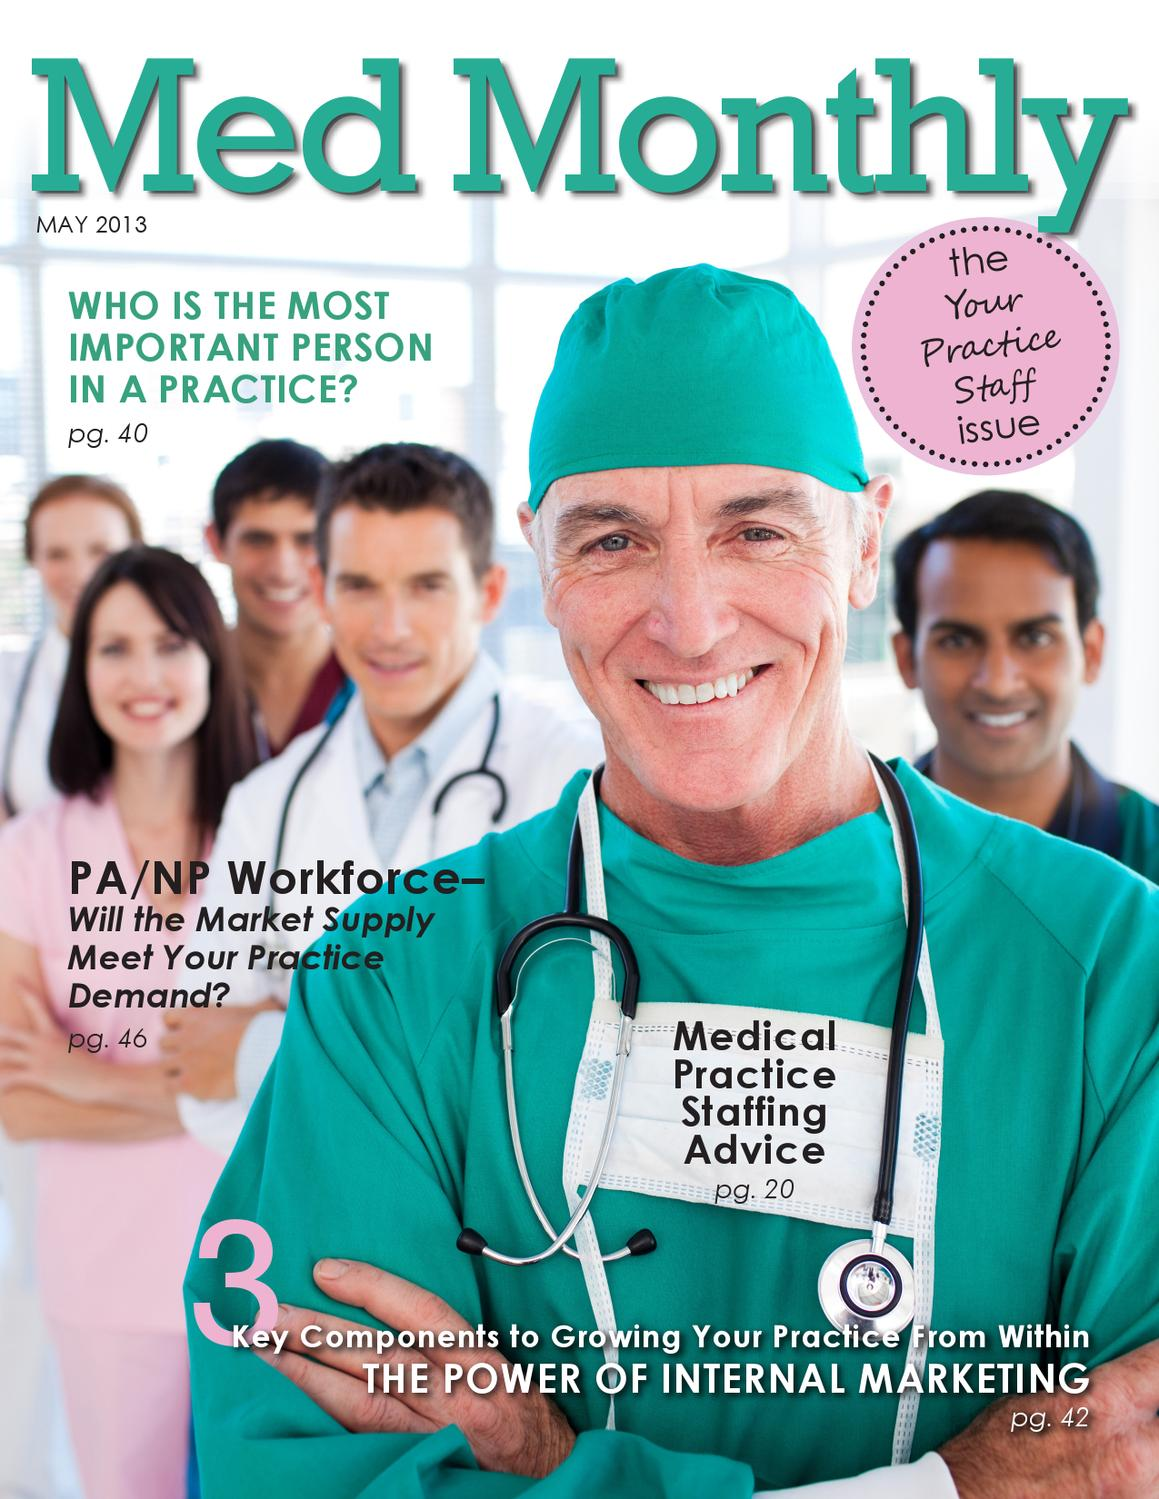 Med Monthly May 2013 by MedMedia9 - issuu